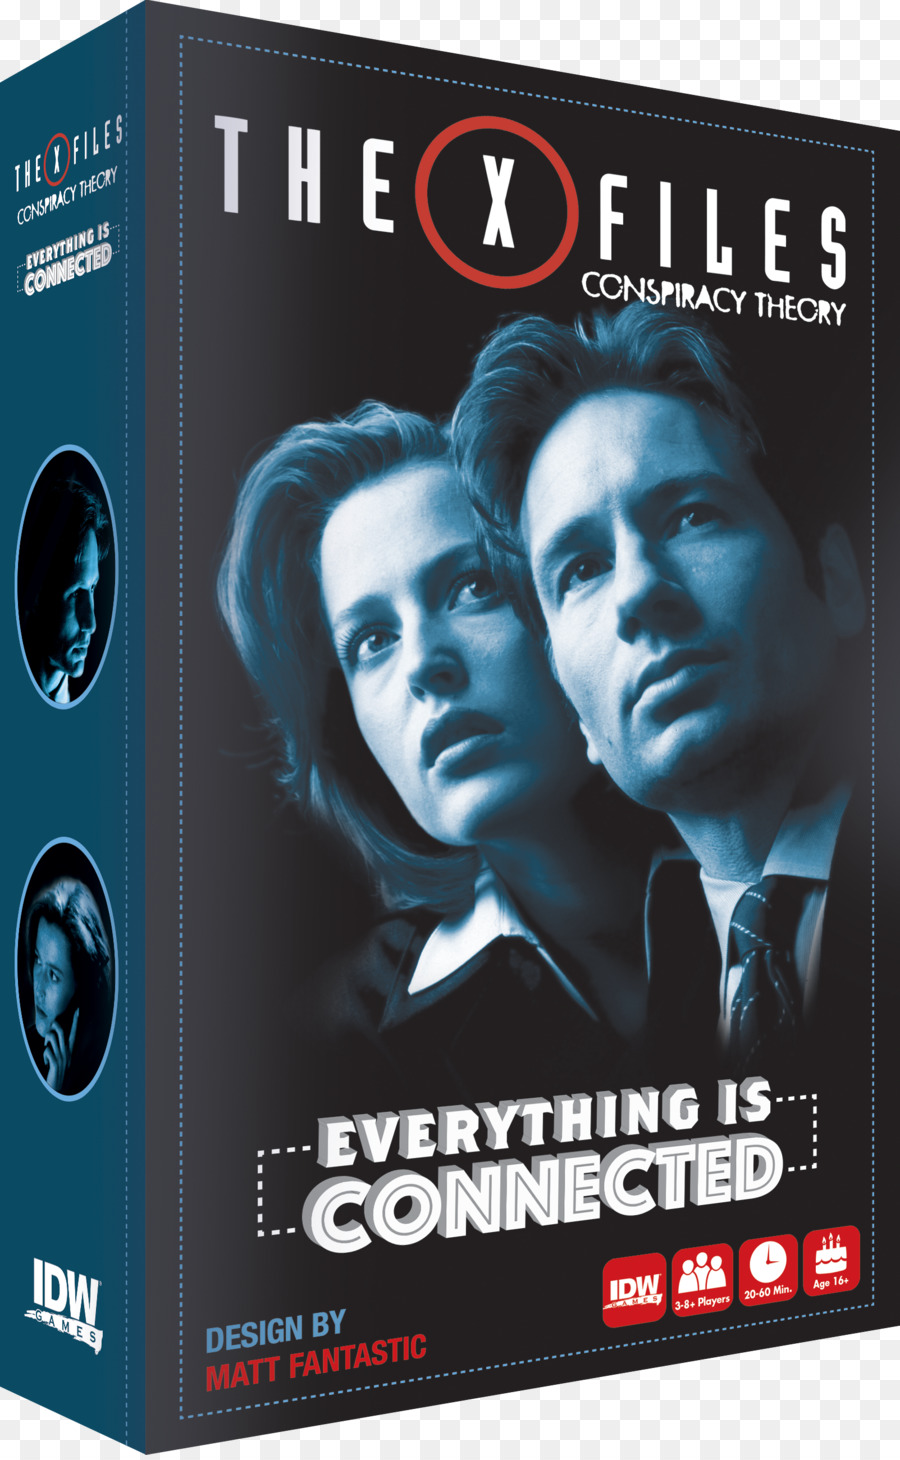 Xfiles Dvd png download - 1603*2591 - Free Transparent Xfiles png